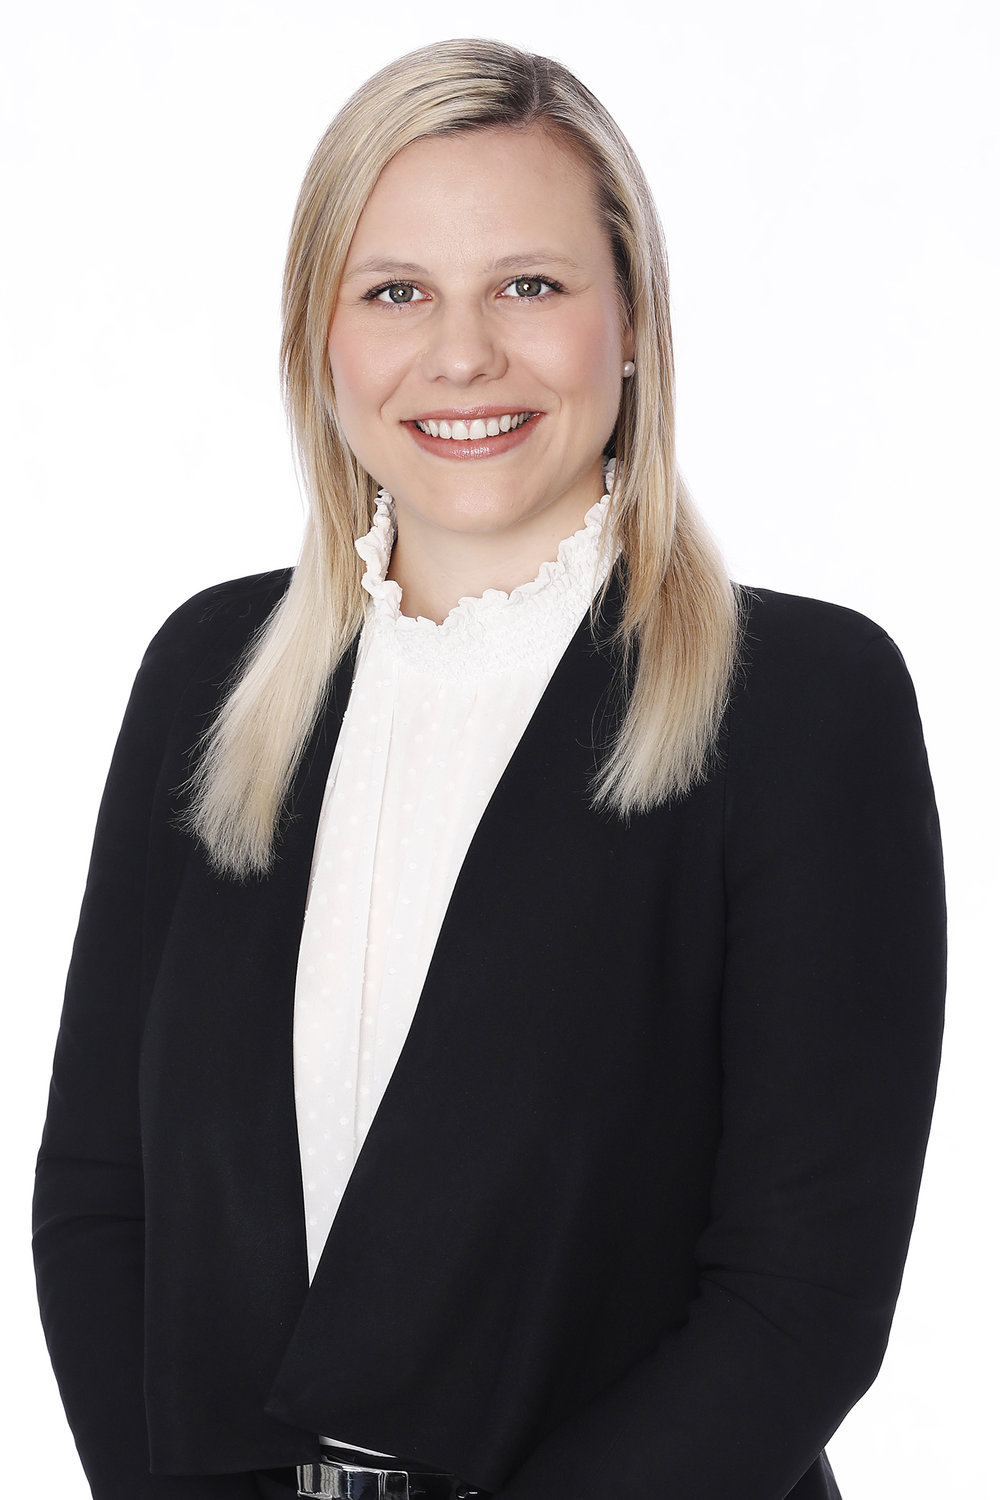 Hannah van wyk - Solicitor Hannah joined the Simonidis Steel team in June 2018 upon completing her Bachelor of Laws, alongside a Bachelor of Business majoring in Accounting, at the Queensland University of Technology and her Graduate Diploma of Legal Practice at the College of Law.Hannah commenced her career in family law in 2013 as a law clerk and the practice manager of a boutique family law firm in Brisbane's inner city suburb of Paddington. For several years she gained practical experience in the field and developed an understanding of the intricacies of parenting and property settlement matters and a love of family law!Hannah is friendly and personable, and genuinely interested in people – some might say she is a 'people person'. She is a driven family lawyer who is instinctively empathetic to understanding the desired outcomes, feelings and fears of her clients. She is focused on supporting her clients through the course of their matter with a positive attitude and approach.